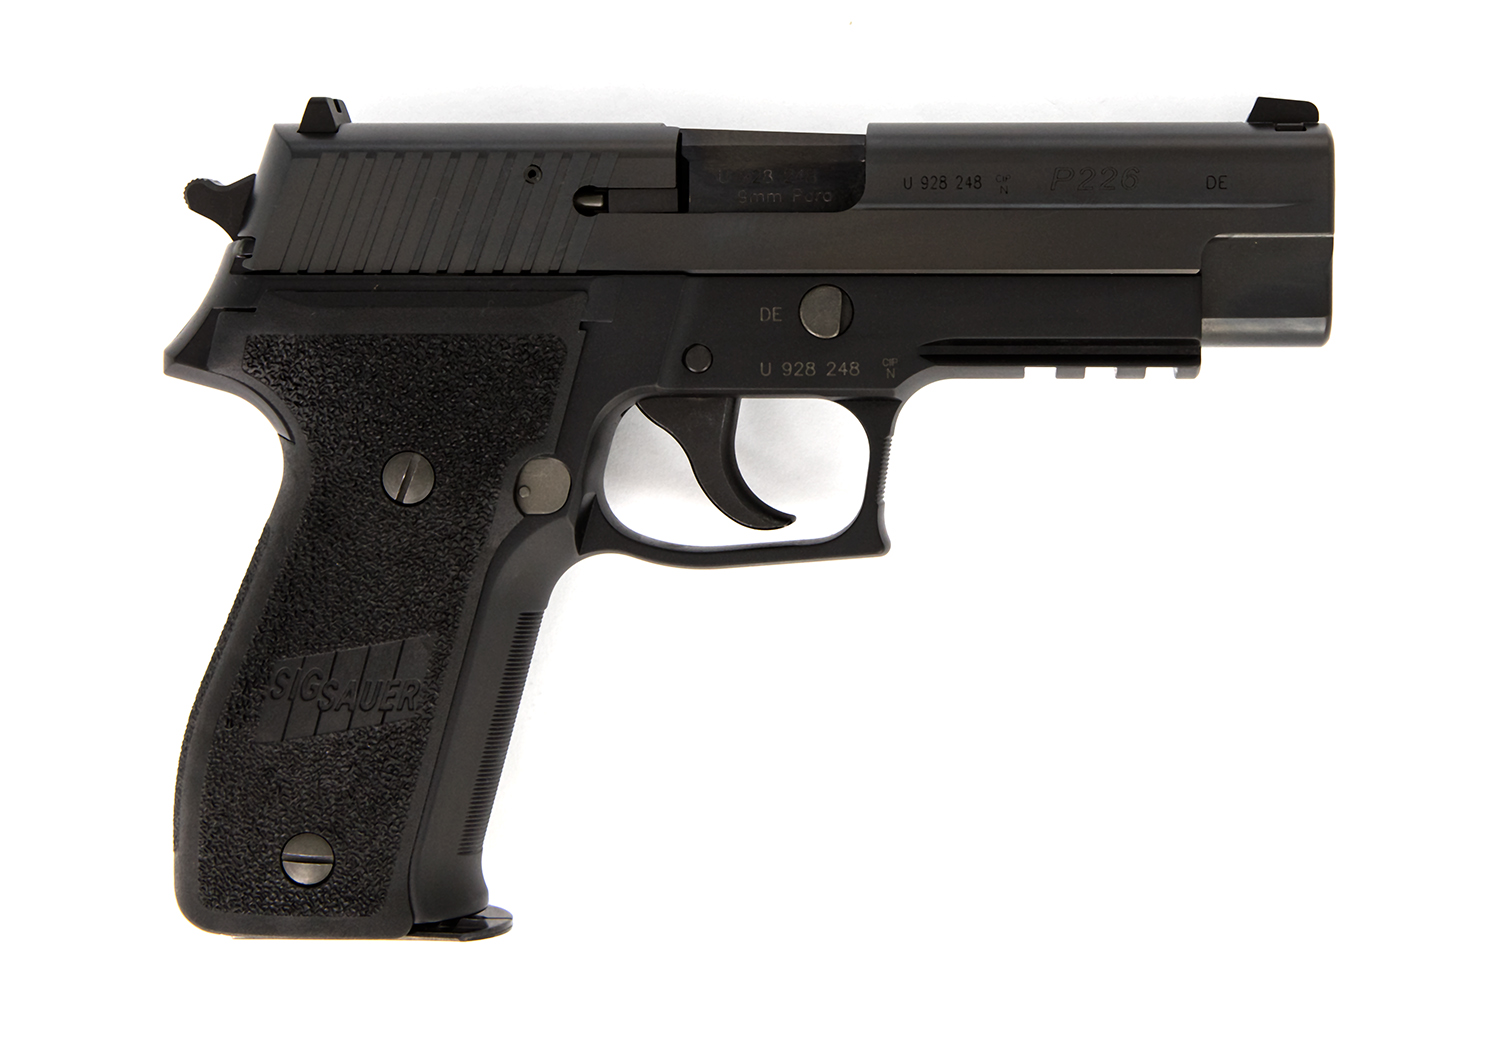 SIG Sauer P226 AL SO BT 9mm Pa